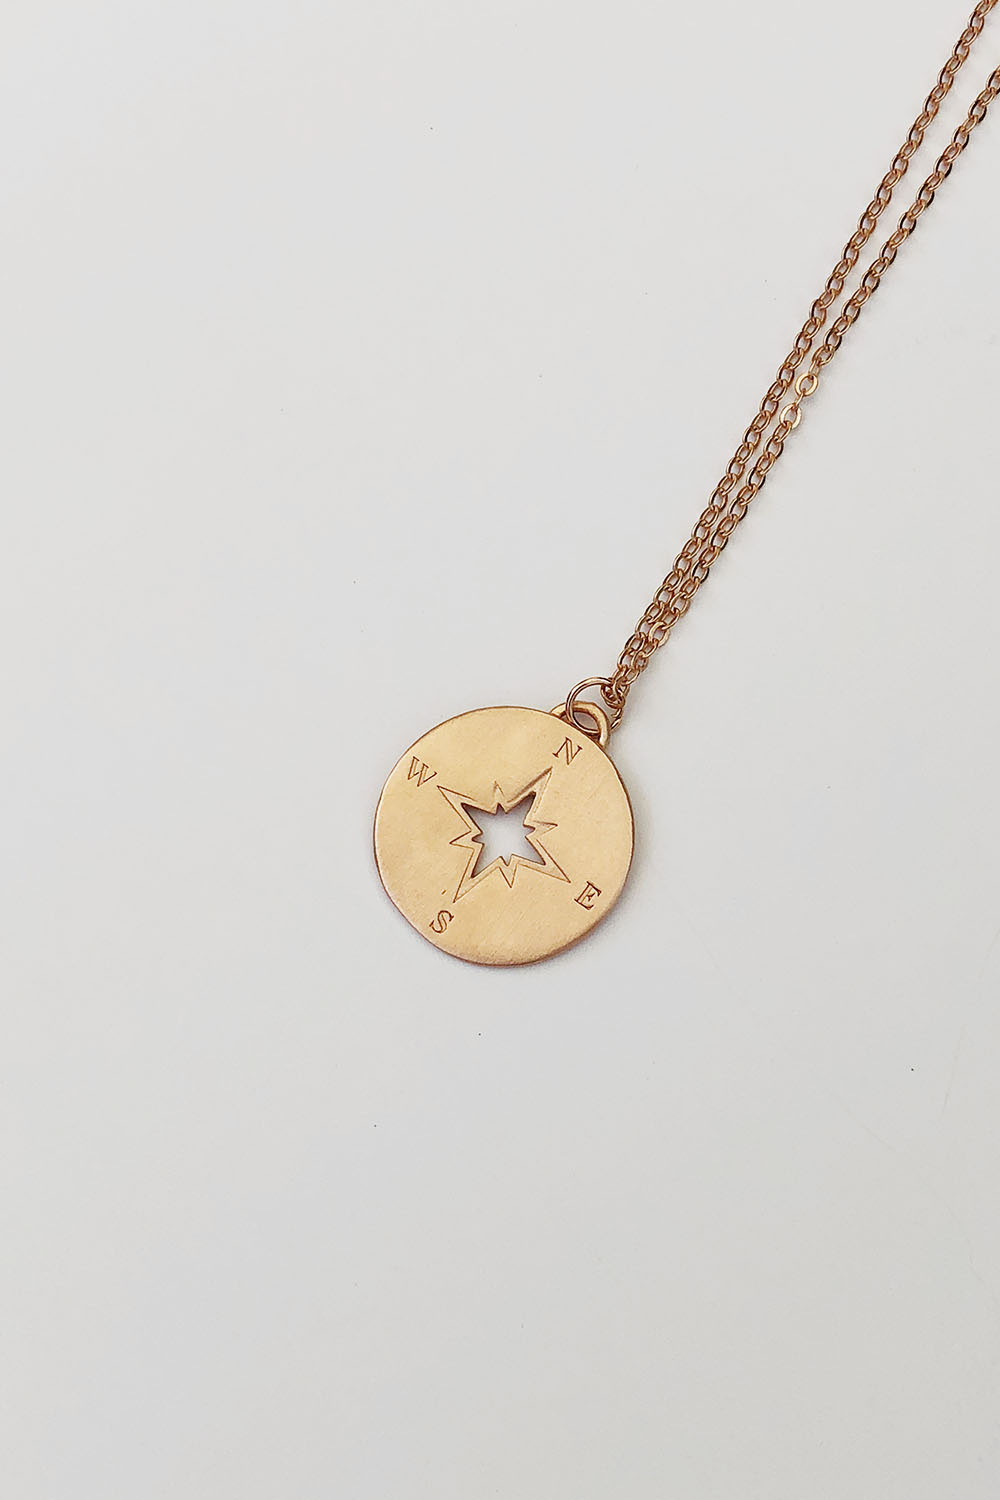 Compass necklace in rose gold